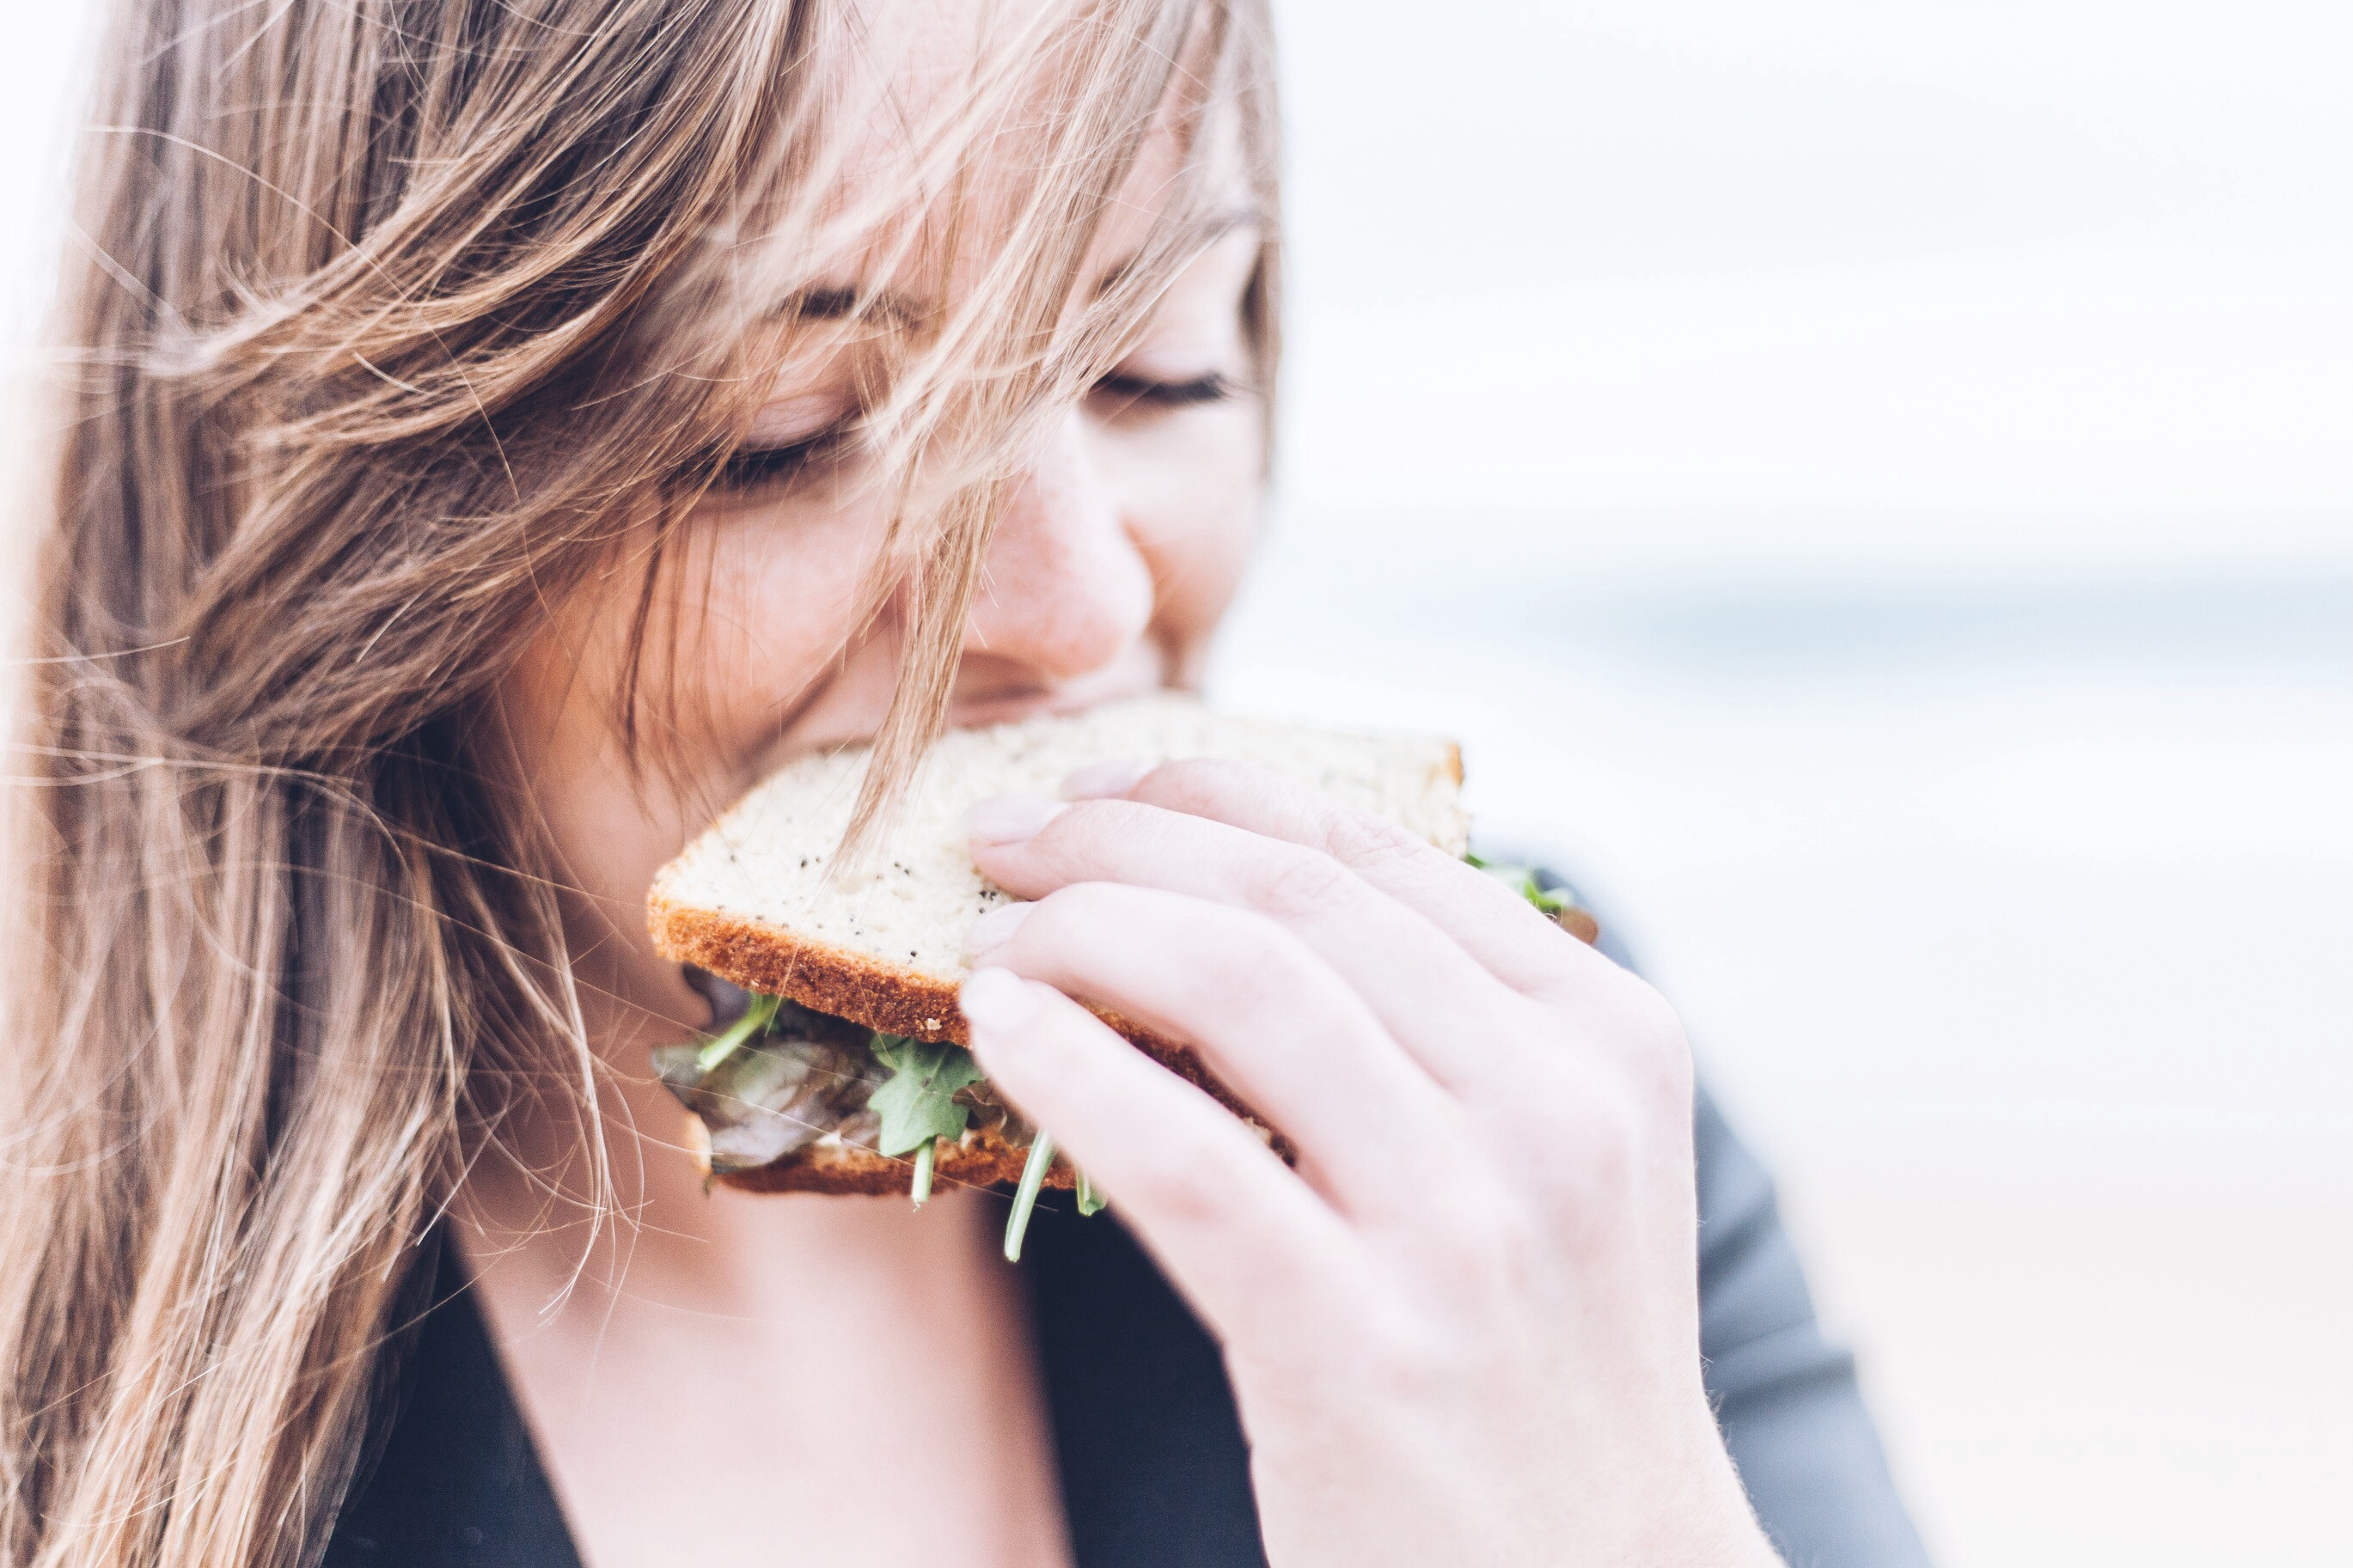 Woman on diet eating a boring sandwich